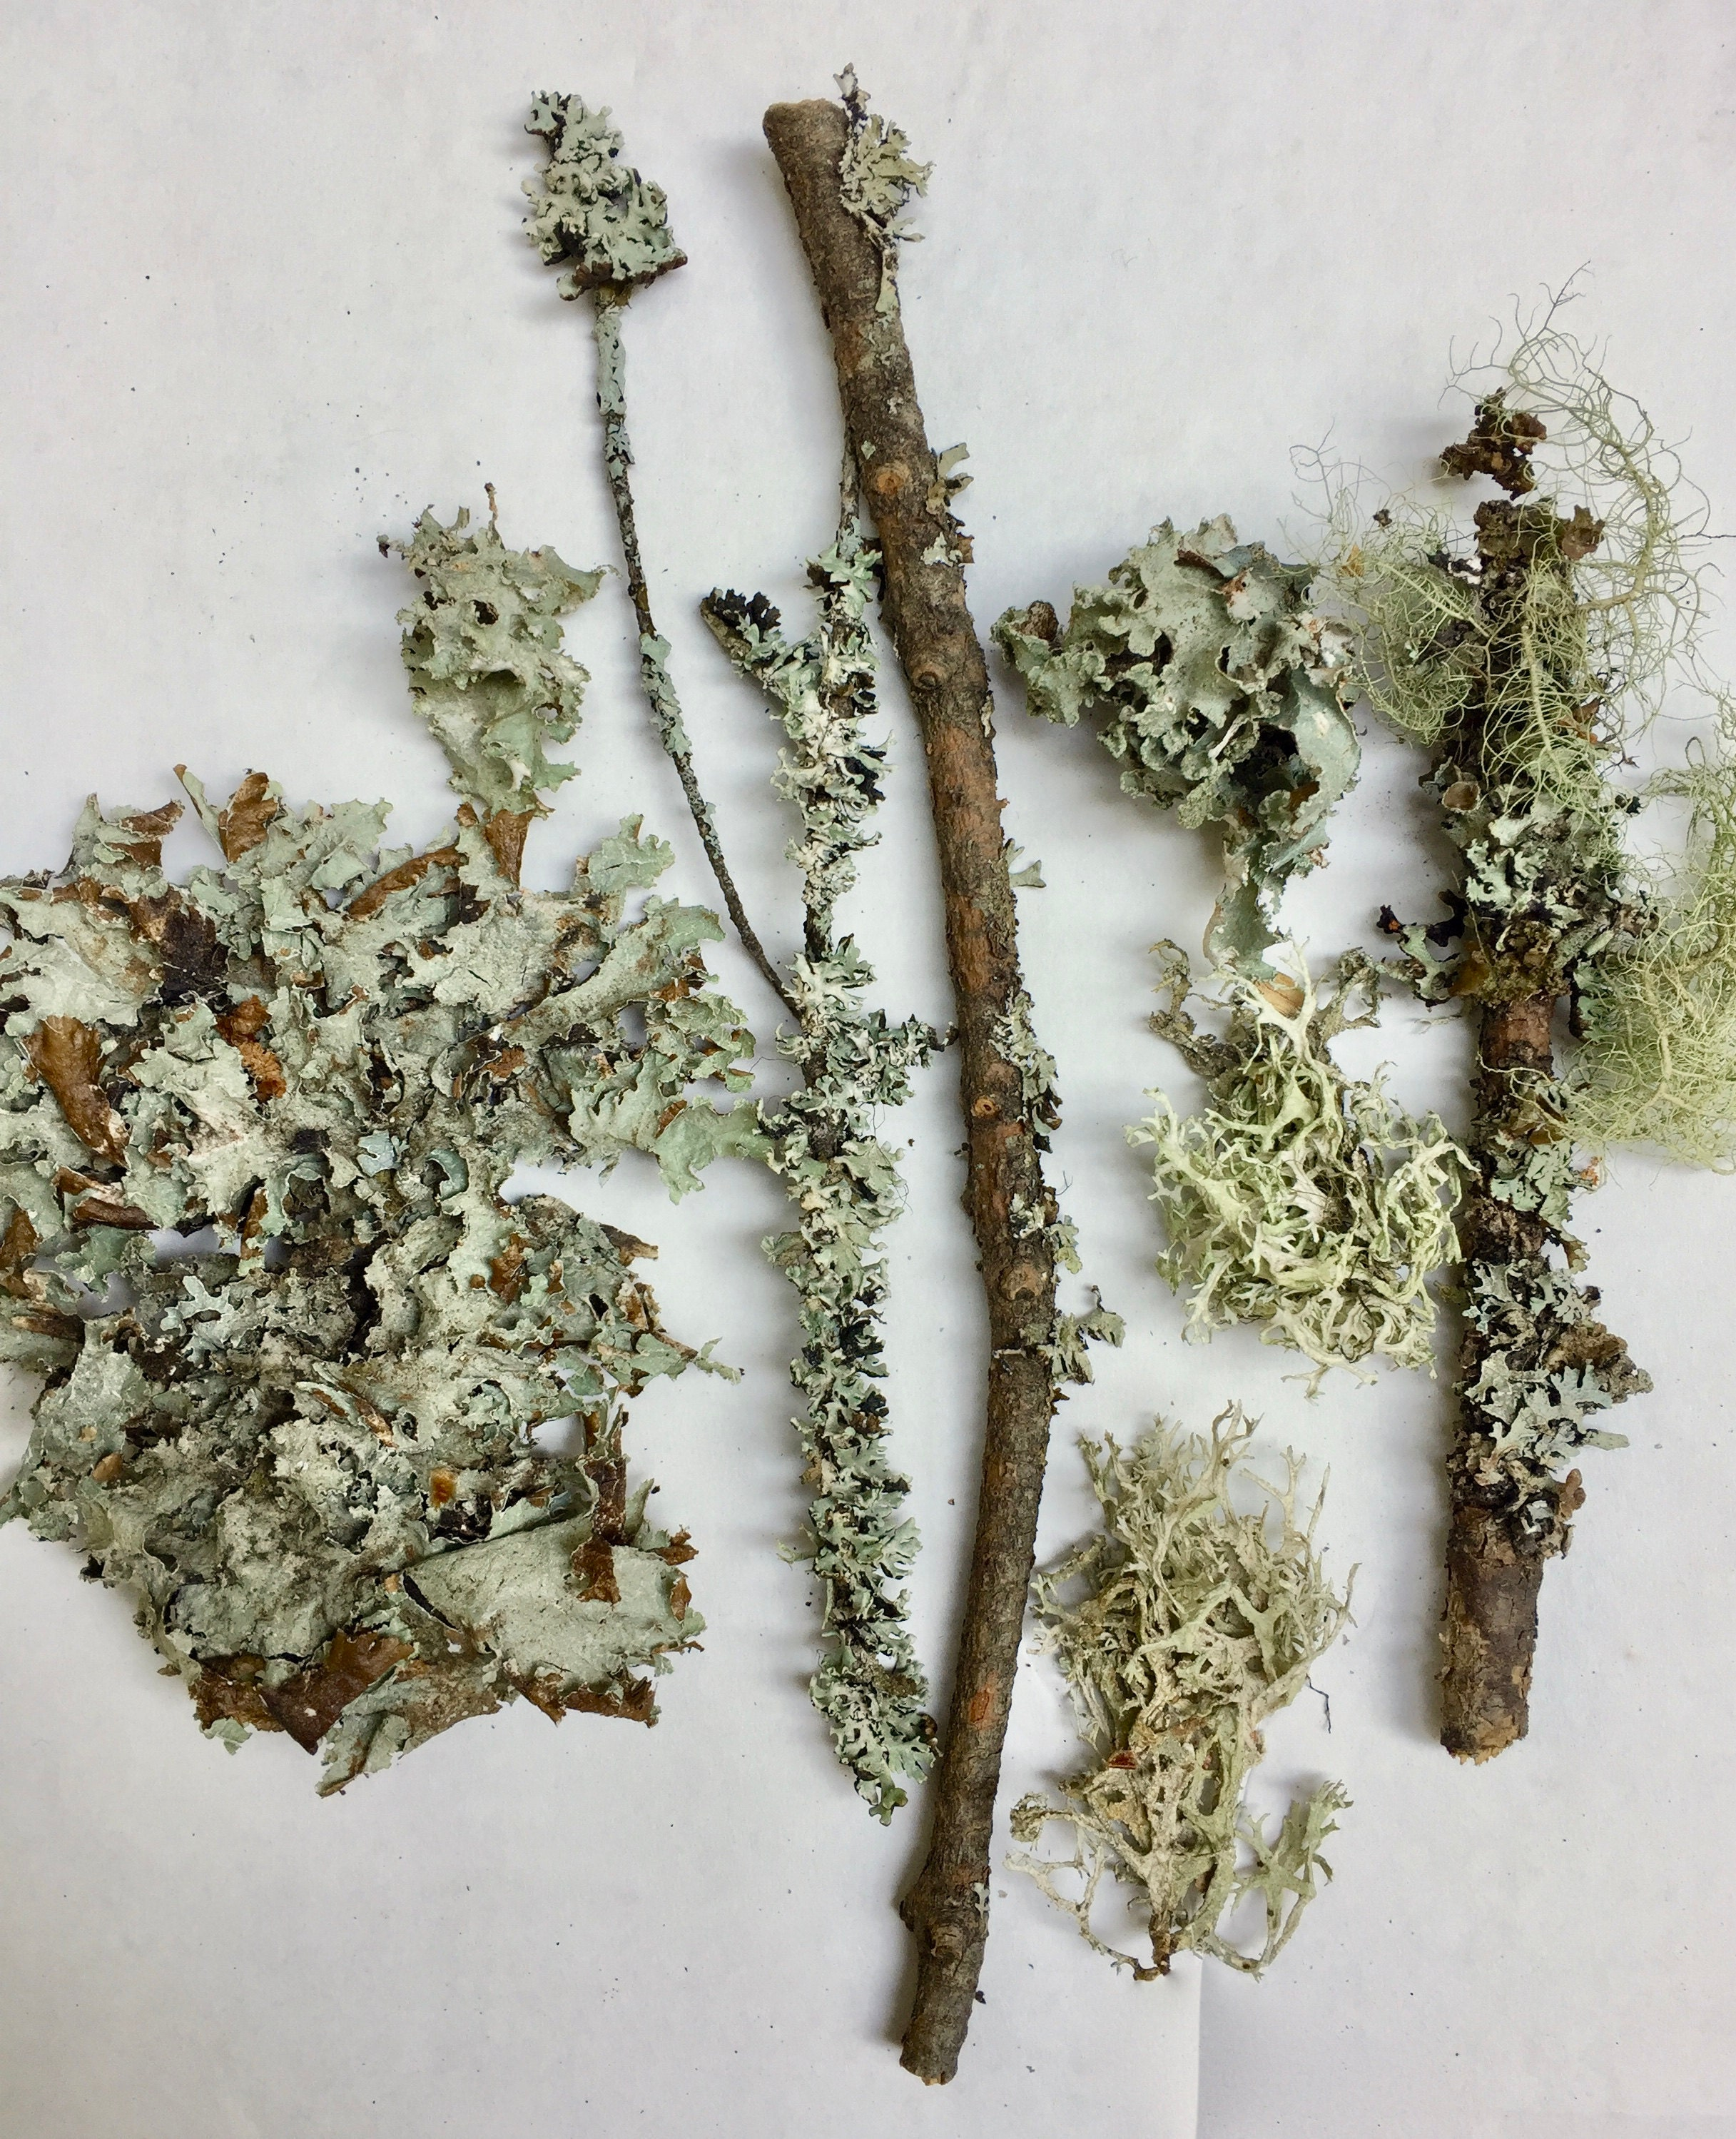 Moss and Lichen for a natural dye bath